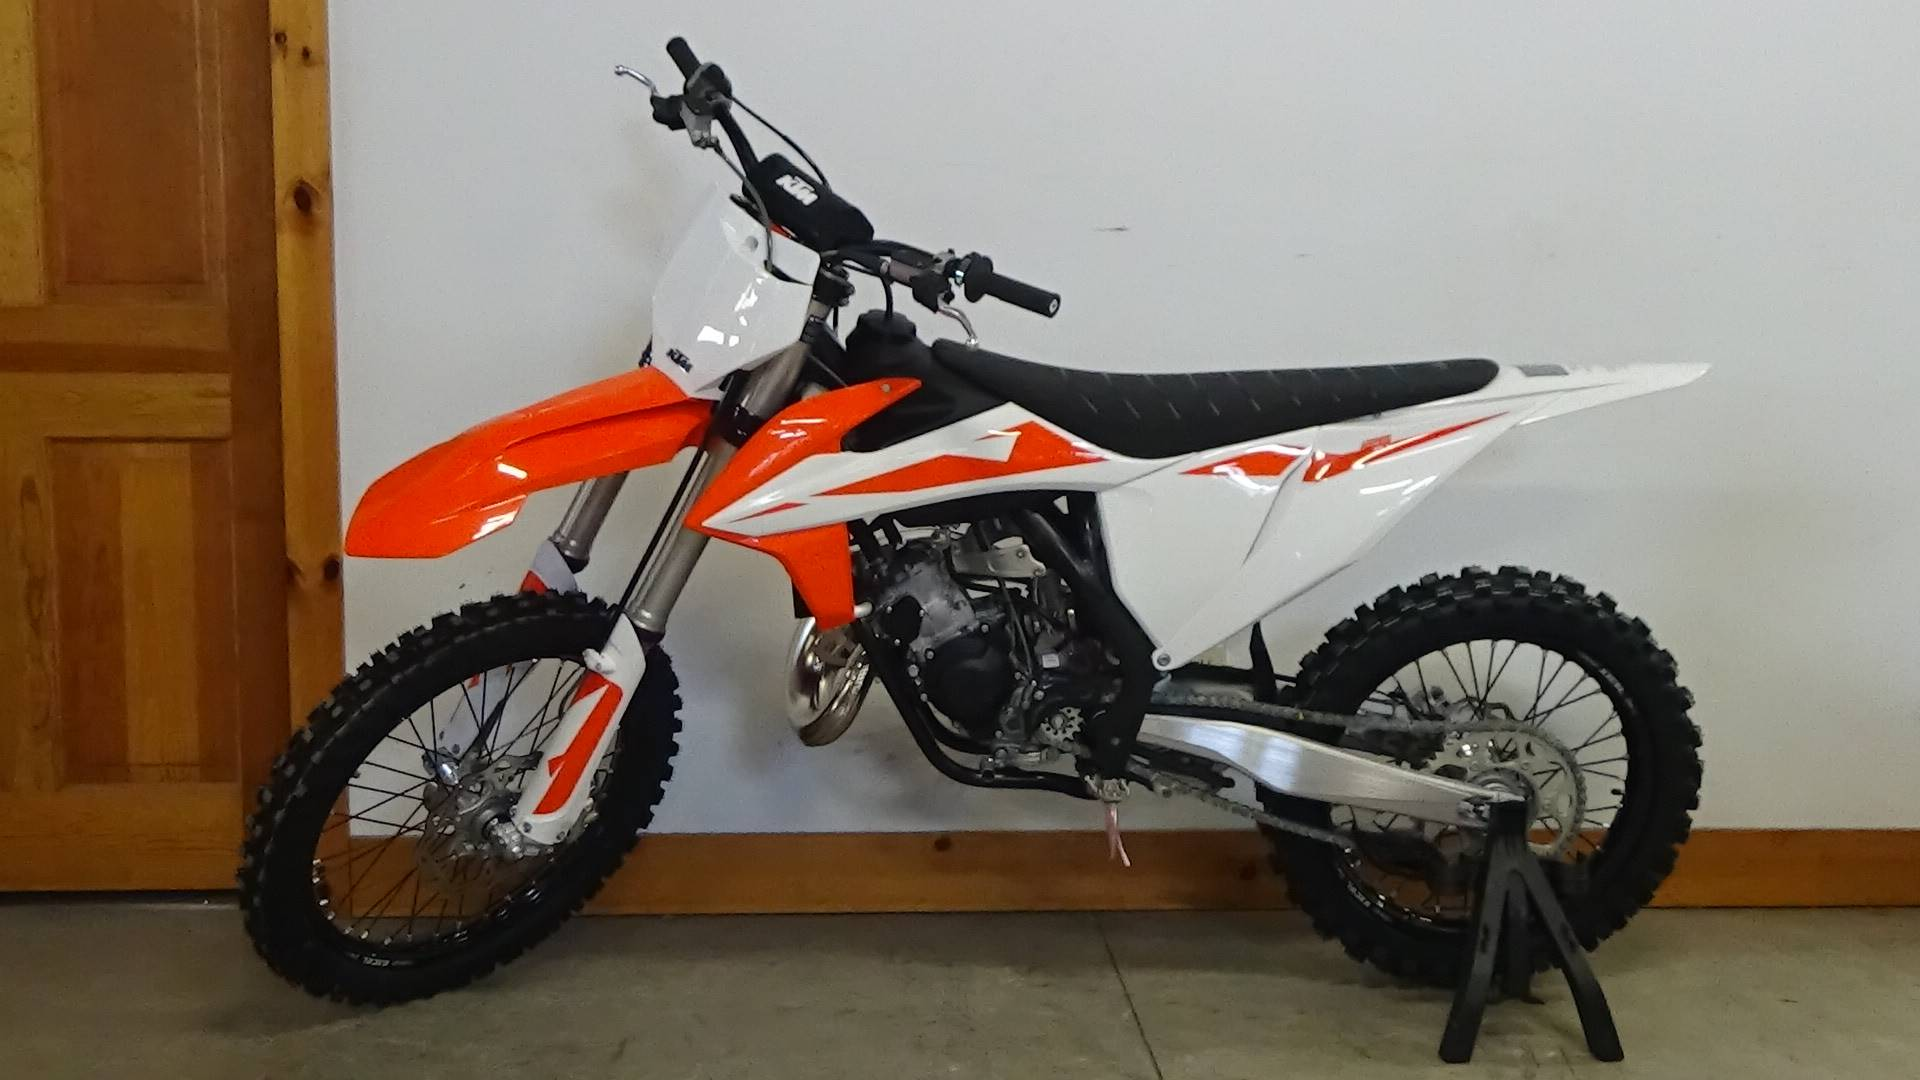 New 2019 KTM 125 SX Motorcycles in Adams, MA | Stock Number